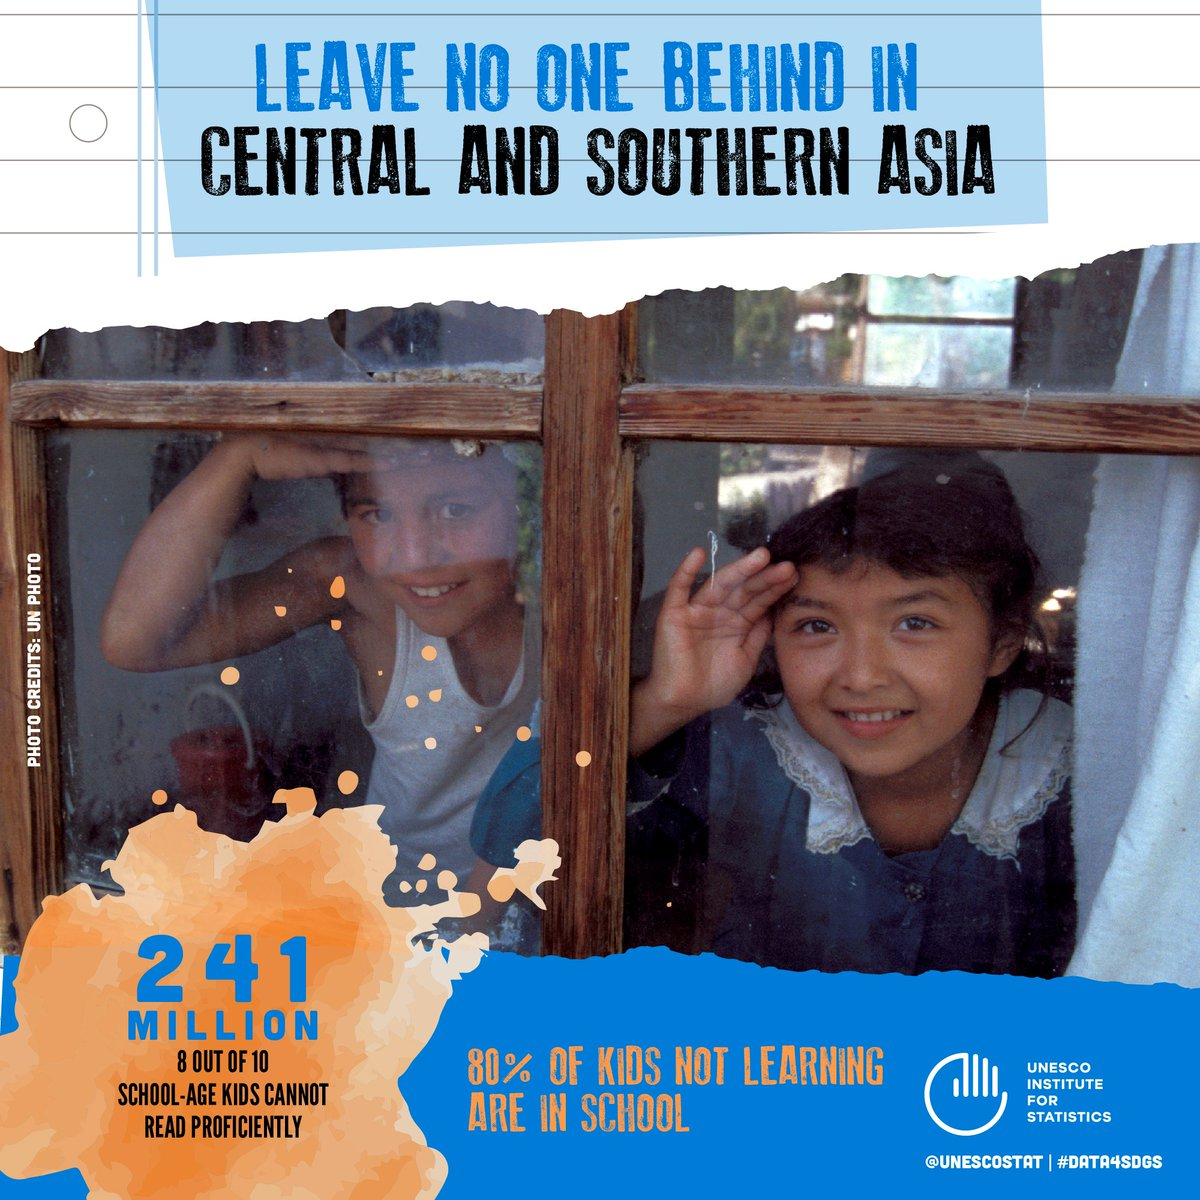 Most children not learning are in school: @UNESCOstat report points to 'crisis' in Central &amp; Southern #Asia  http:// ow.ly/wIPz30fmGdW  &nbsp;   #SDG4<br>http://pic.twitter.com/P8cZTOnR8M